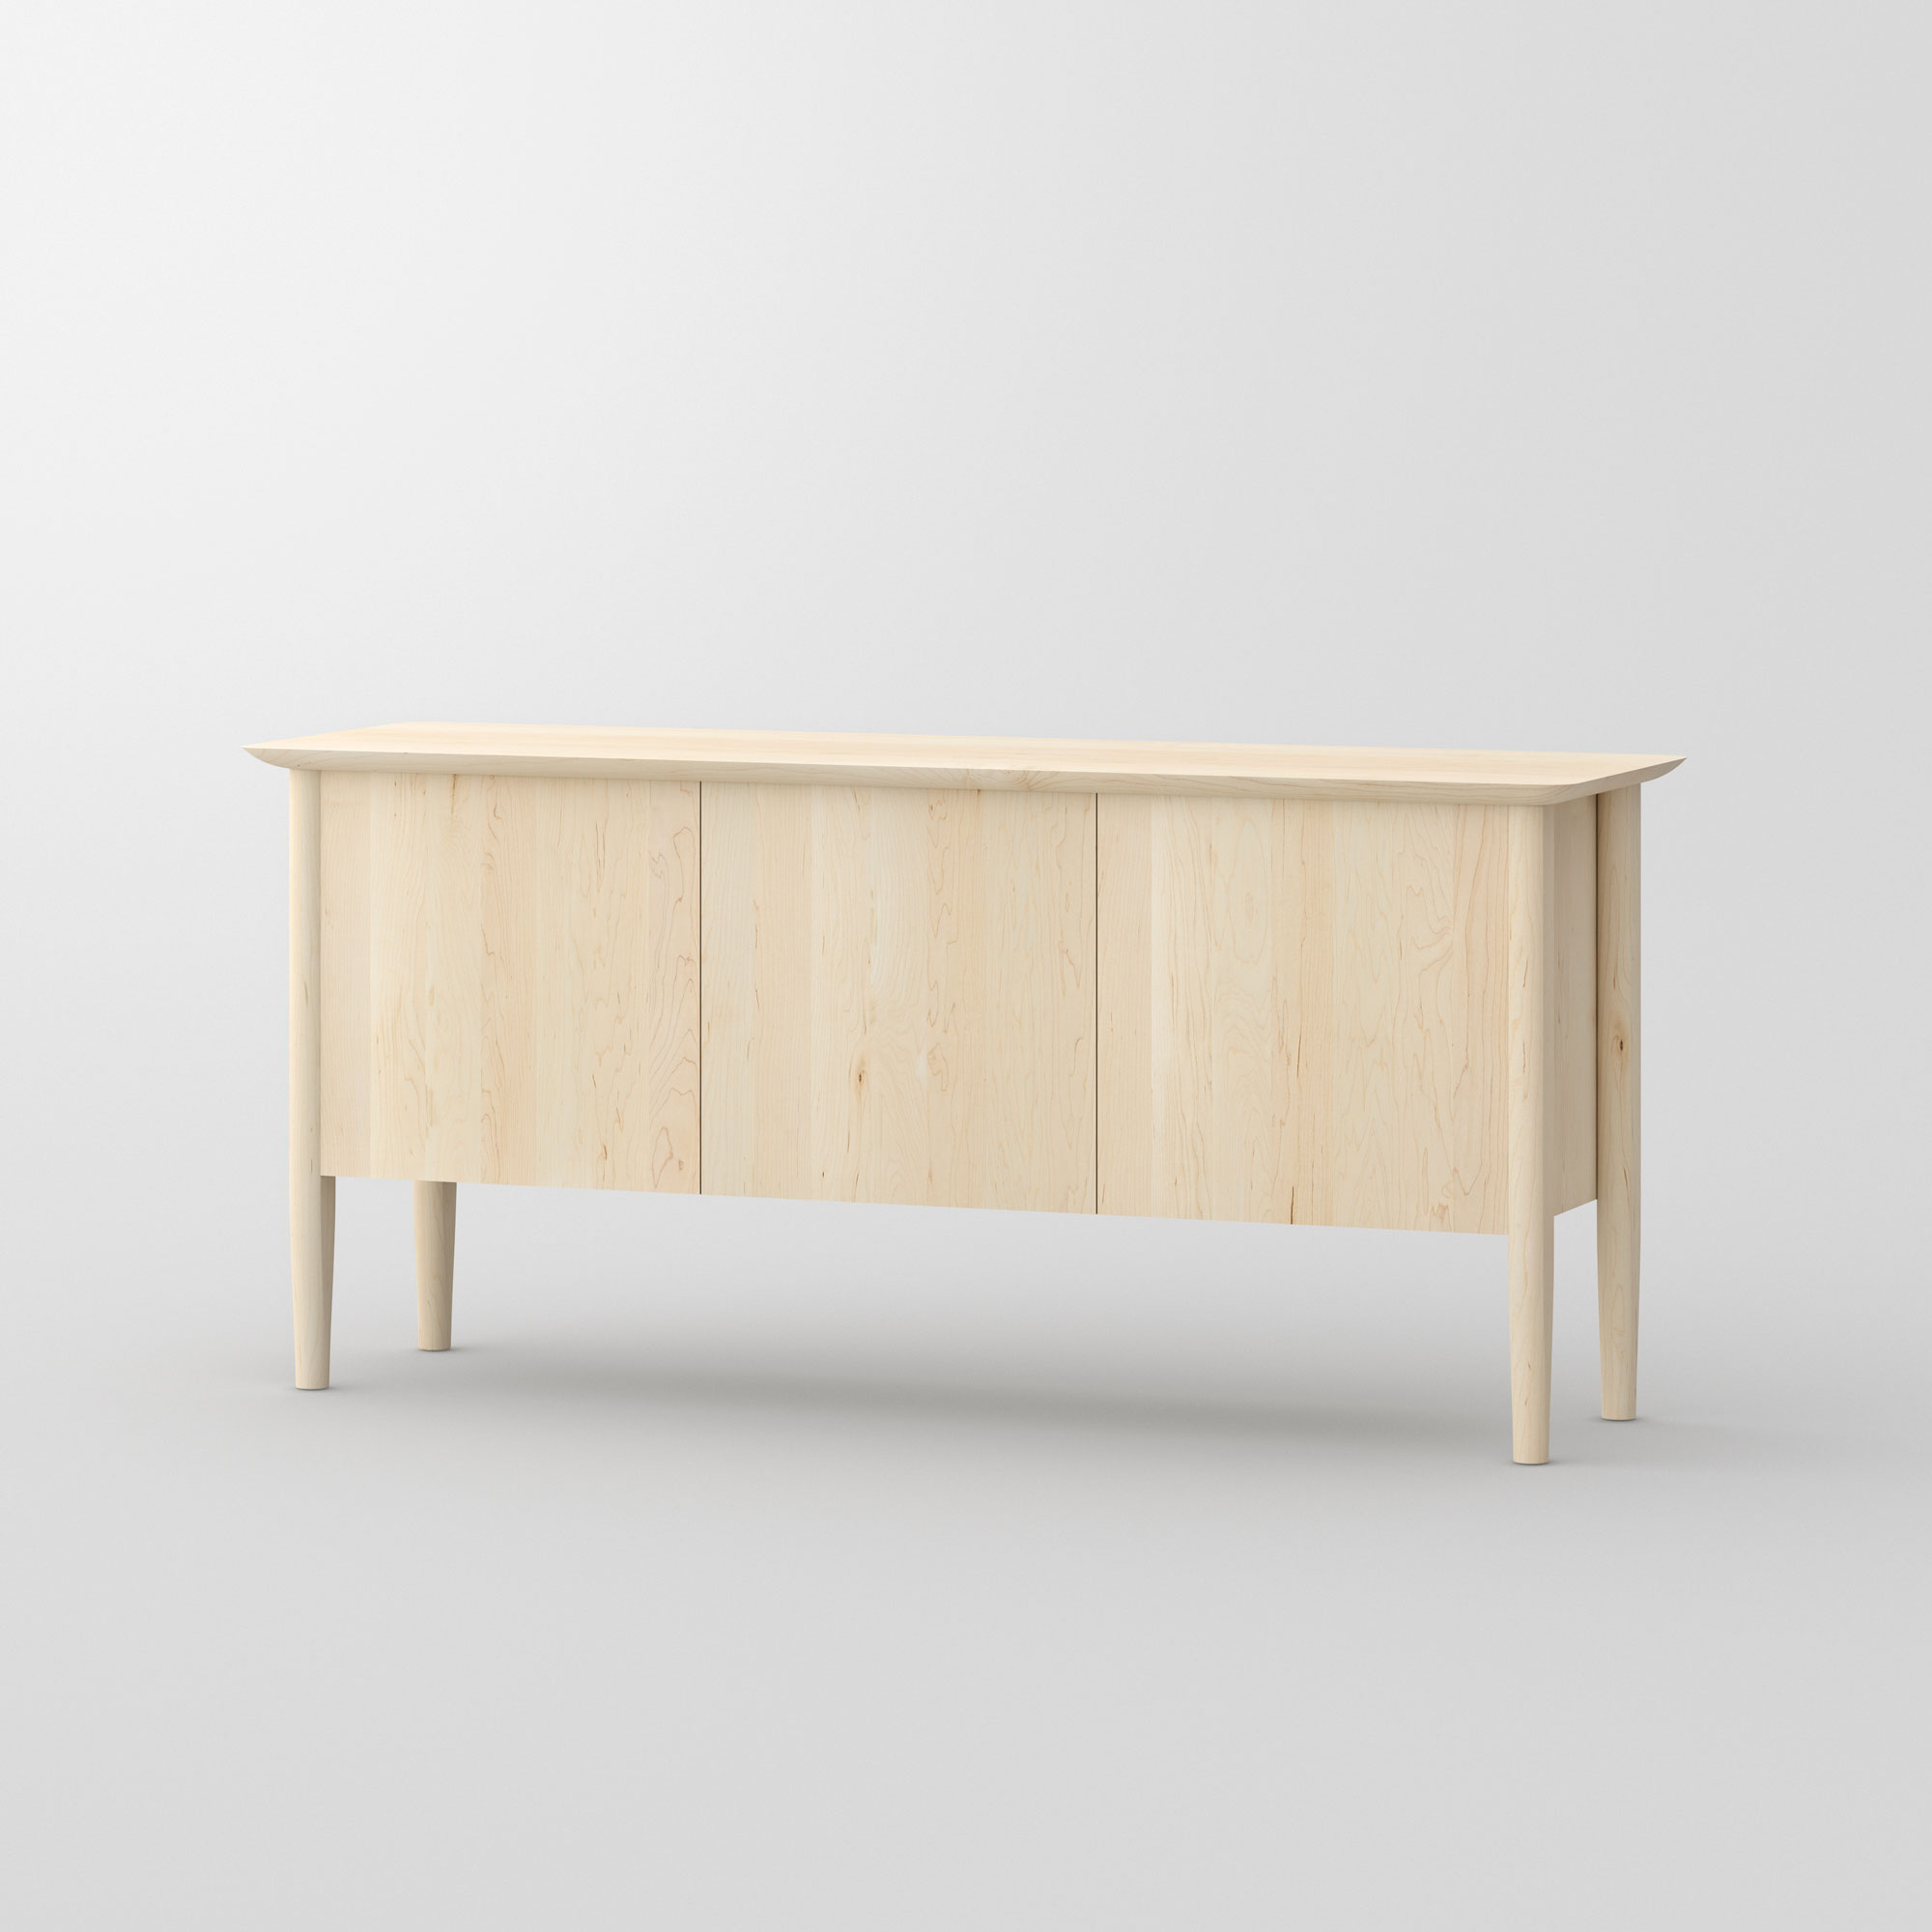 Designer Sideboard AETAS vitamin-design custom made in solid wood by vitamin design